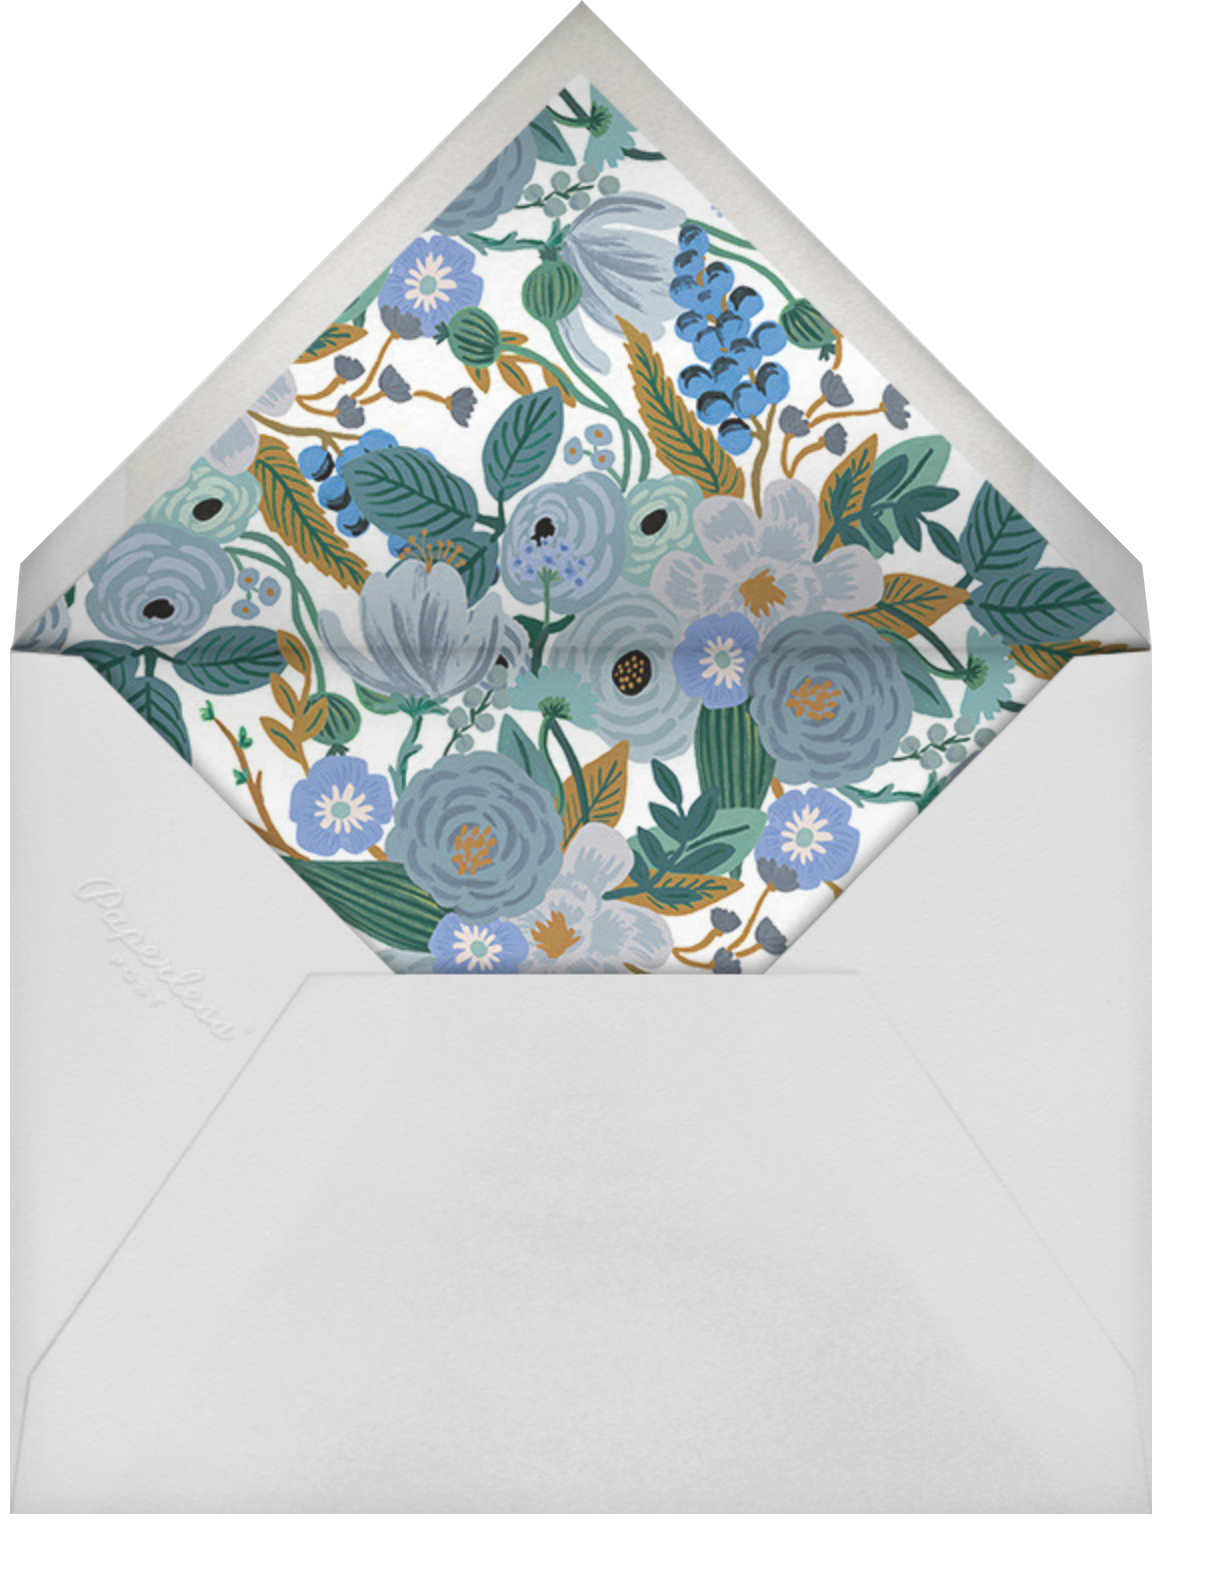 Autumn Knoll - Rifle Paper Co. - Adult birthday - envelope back